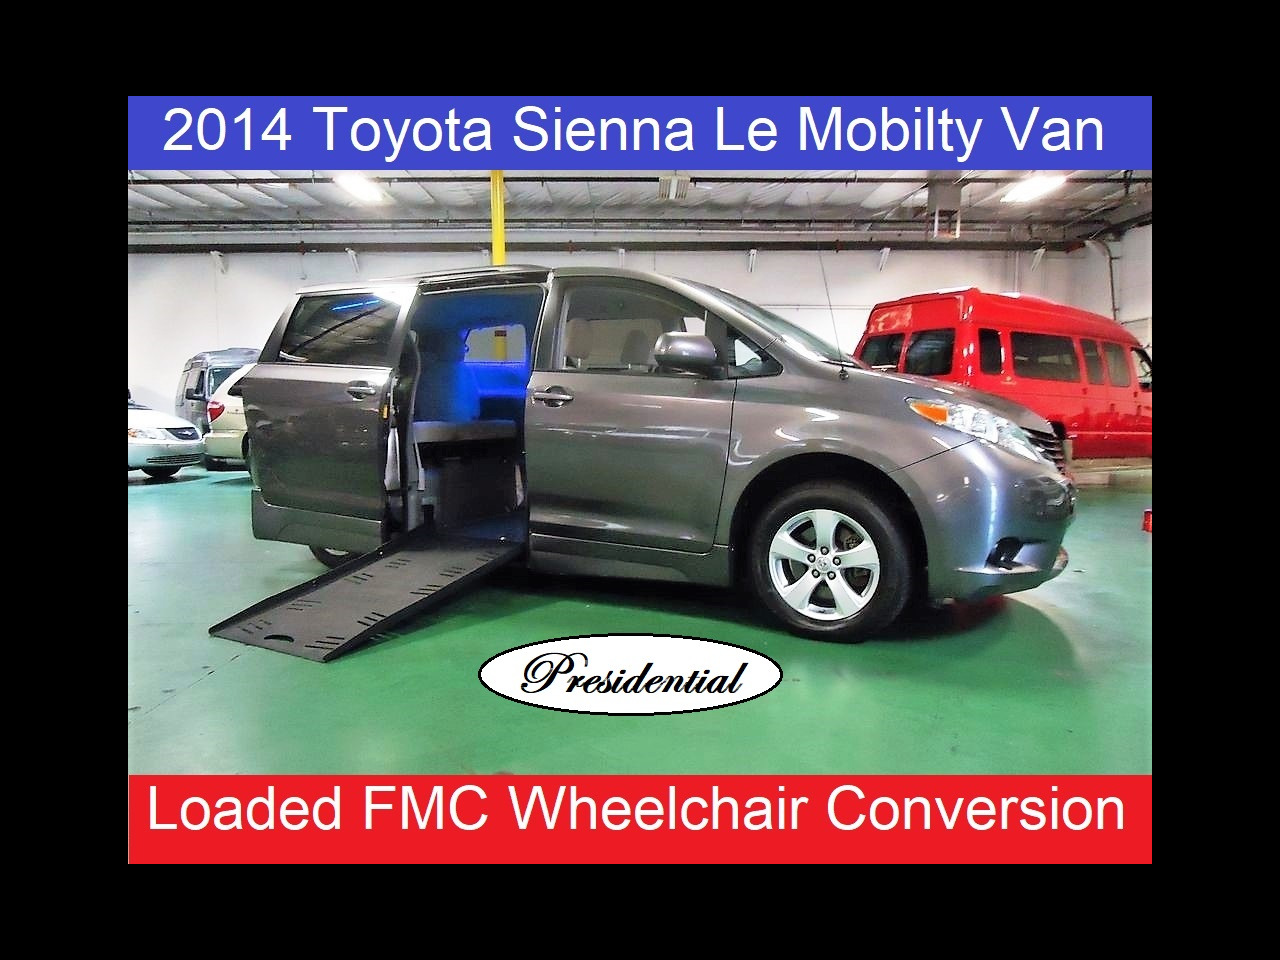 2014 Toyota SIENNA LE/ Presidential Wheelchair Mobility Conversion Van